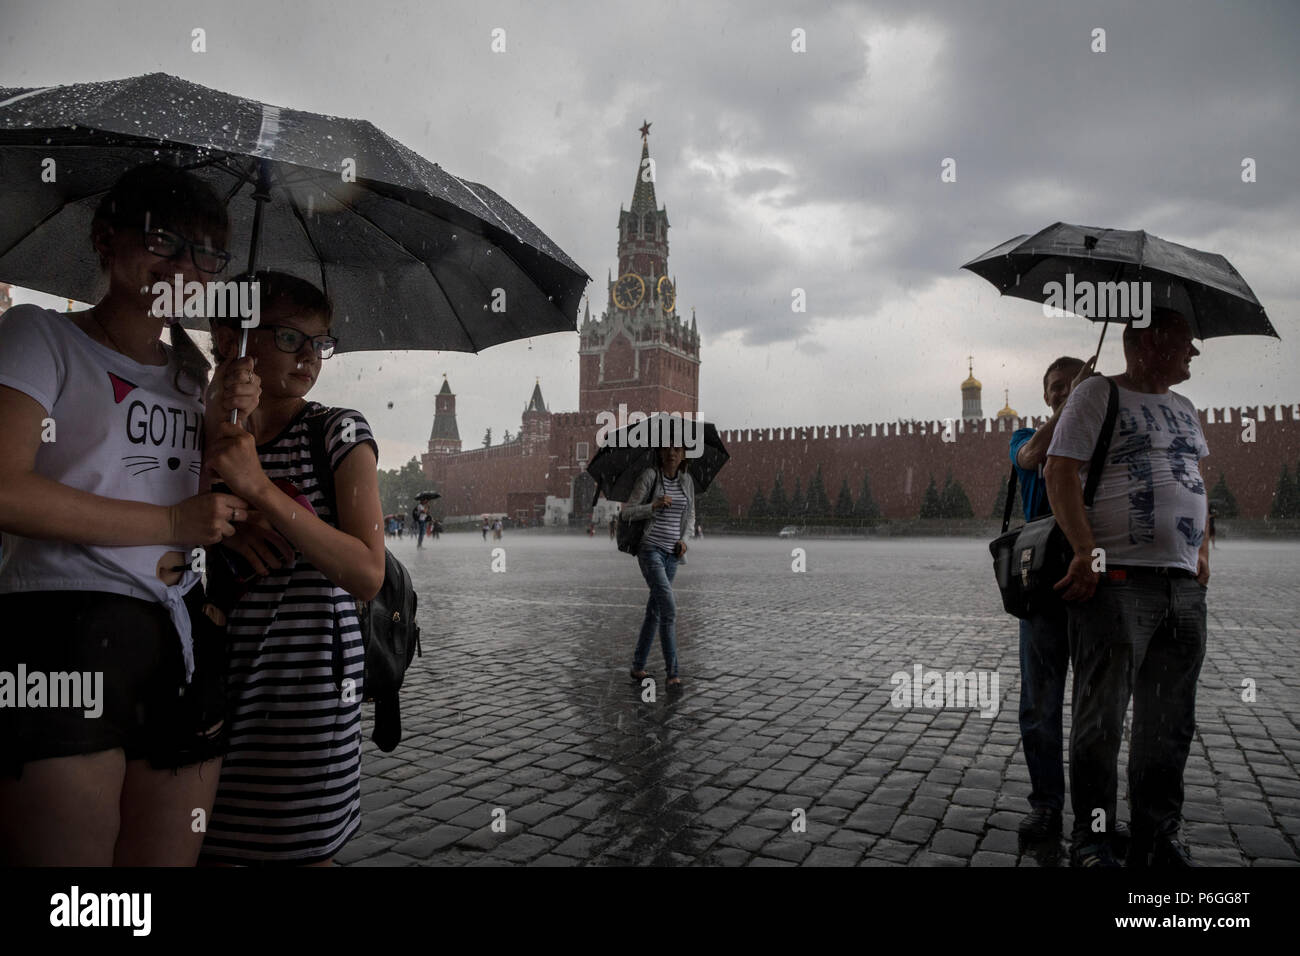 Rainy weather in Moscow. People with umbrella on Red square in central Moscow, Russia - Stock Image